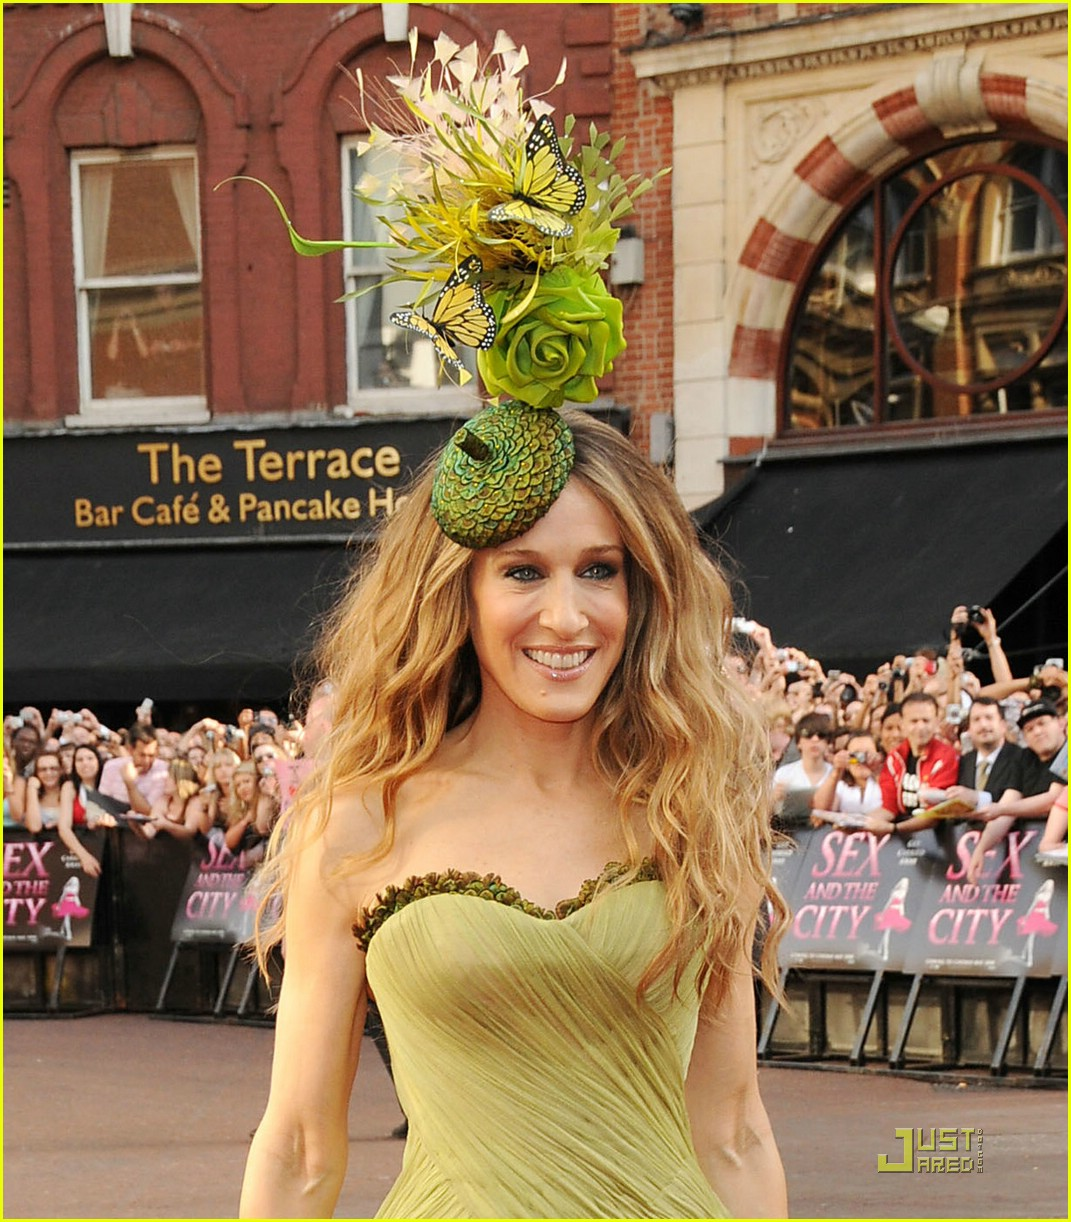 http://4.bp.blogspot.com/_9ZYLdB0mVjU/TAgs9ZIk5eI/AAAAAAAADr8/TsA4aVZ3ClY/s1600/sarah-jessica-parker-sex-and-the-city-premiere-02.jpg